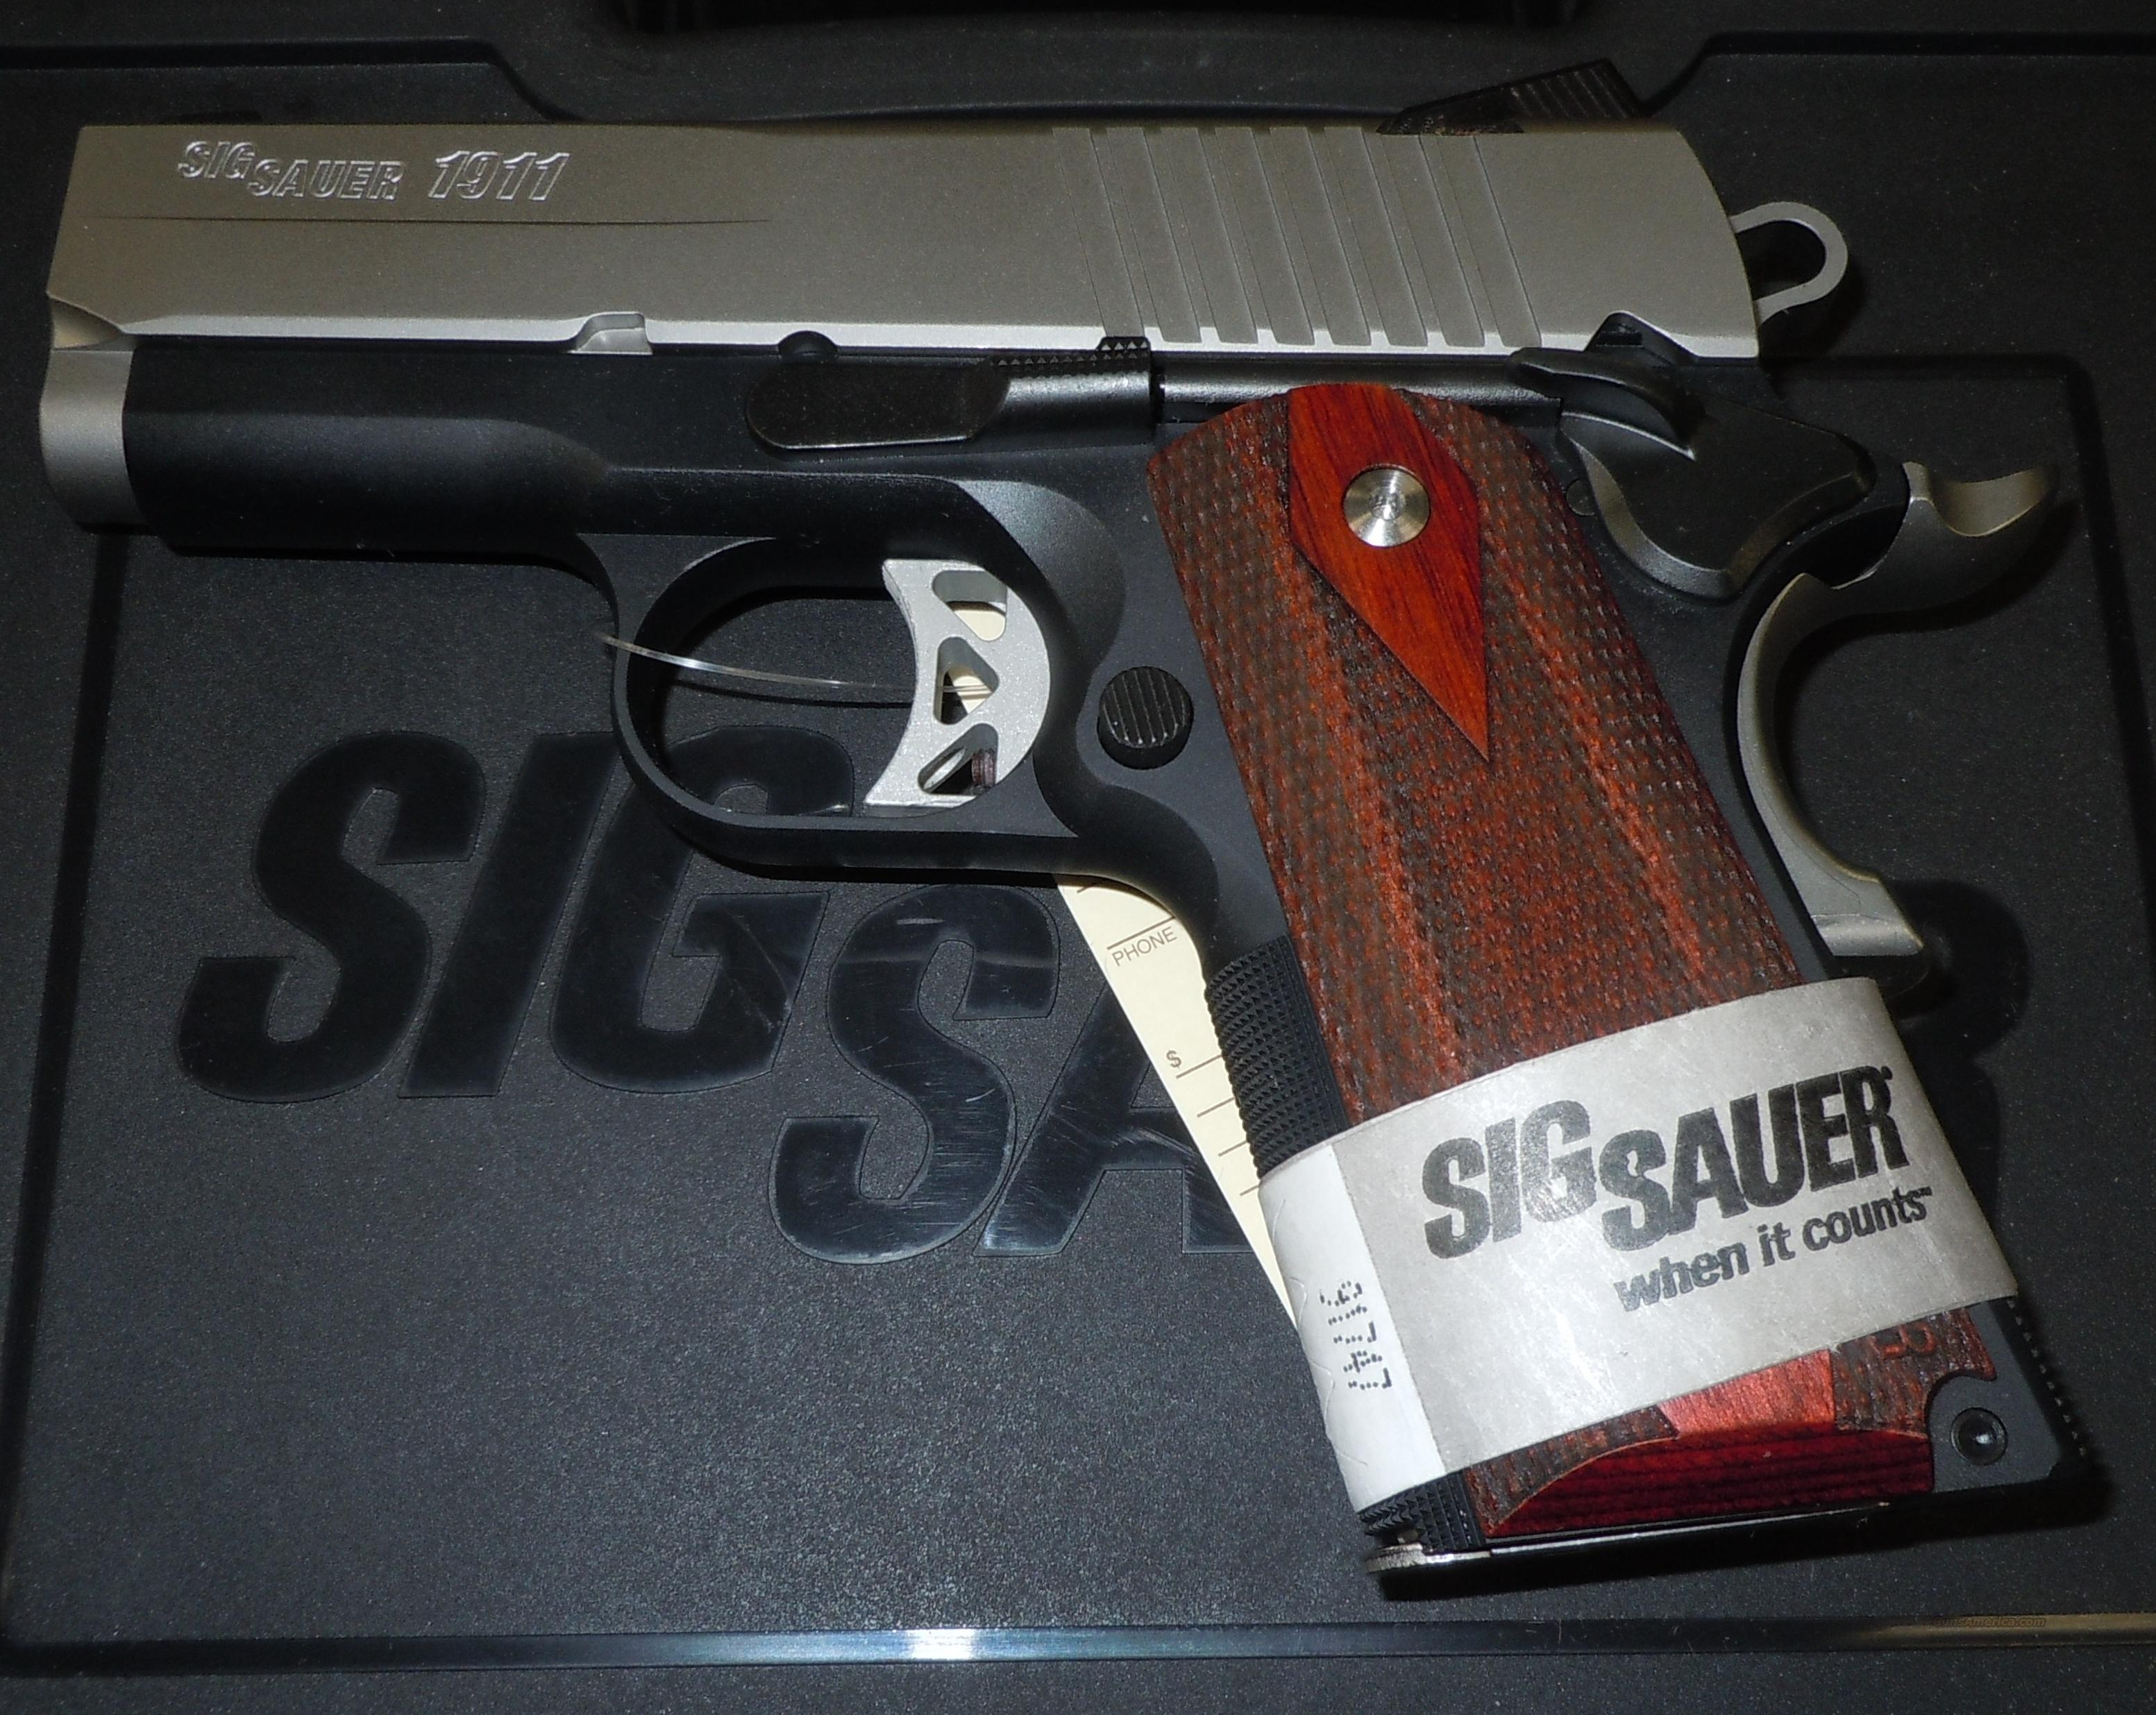 SIG SAUER 1911 ULTRA COMPACT TWO-TONE 45ACP PISTOL (1911U-45-TSS)  Guns > Pistols > Sig - Sauer/Sigarms Pistols > 1911